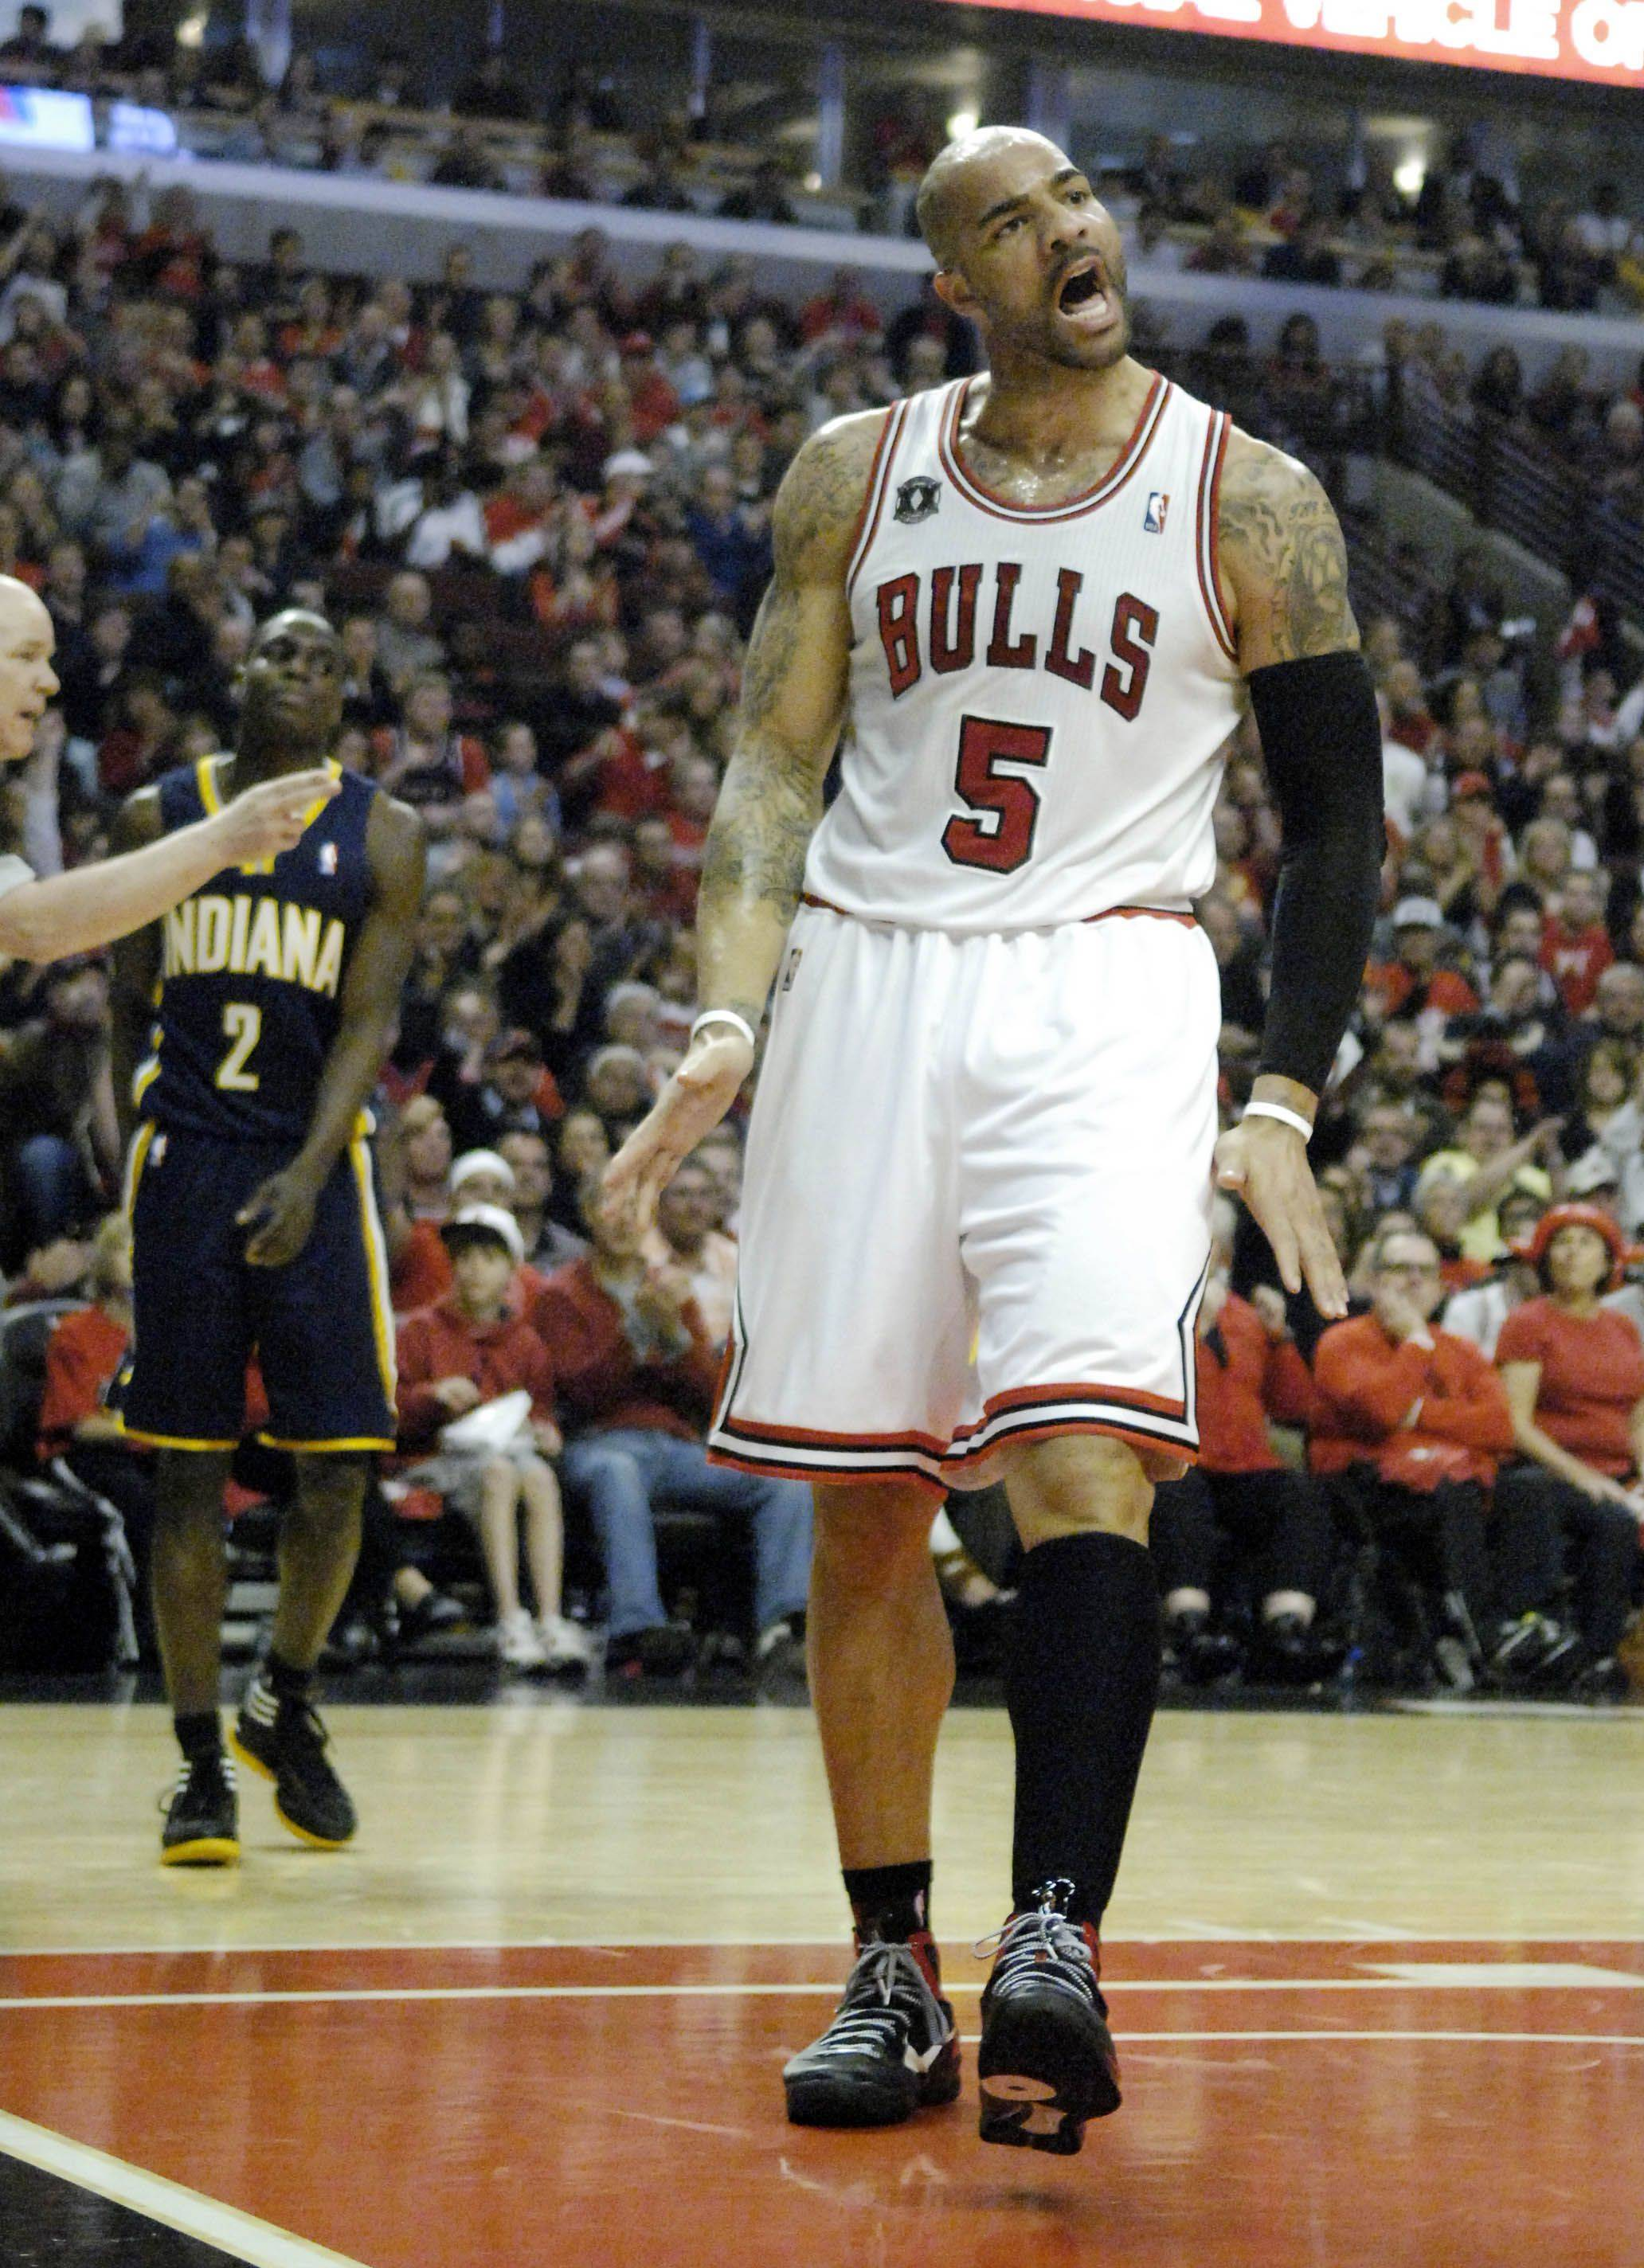 Chicago Bulls power forward Carlos Boozer (5) exults after being fouled on a made shot during Game One of the NBA Eastern Conference Quarterfinals Saturday at the United Center in Chicago.